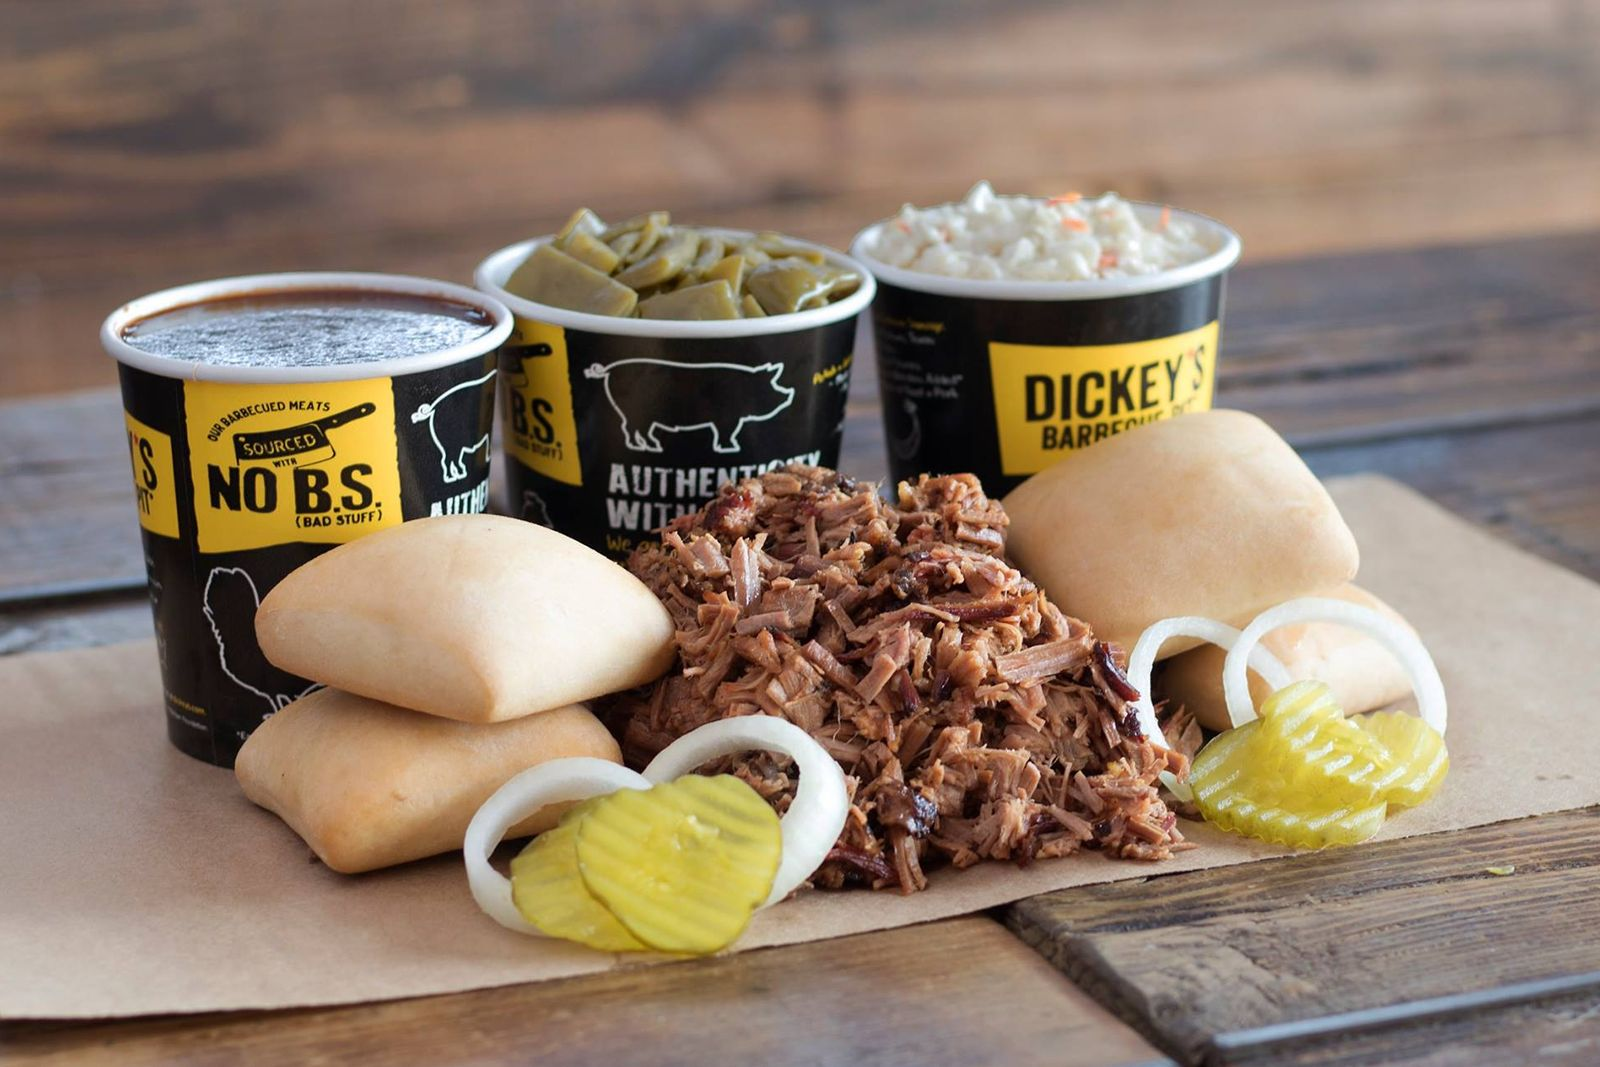 Local Entrepreneur Brings Dickey's Barbecue Pit to Peoria